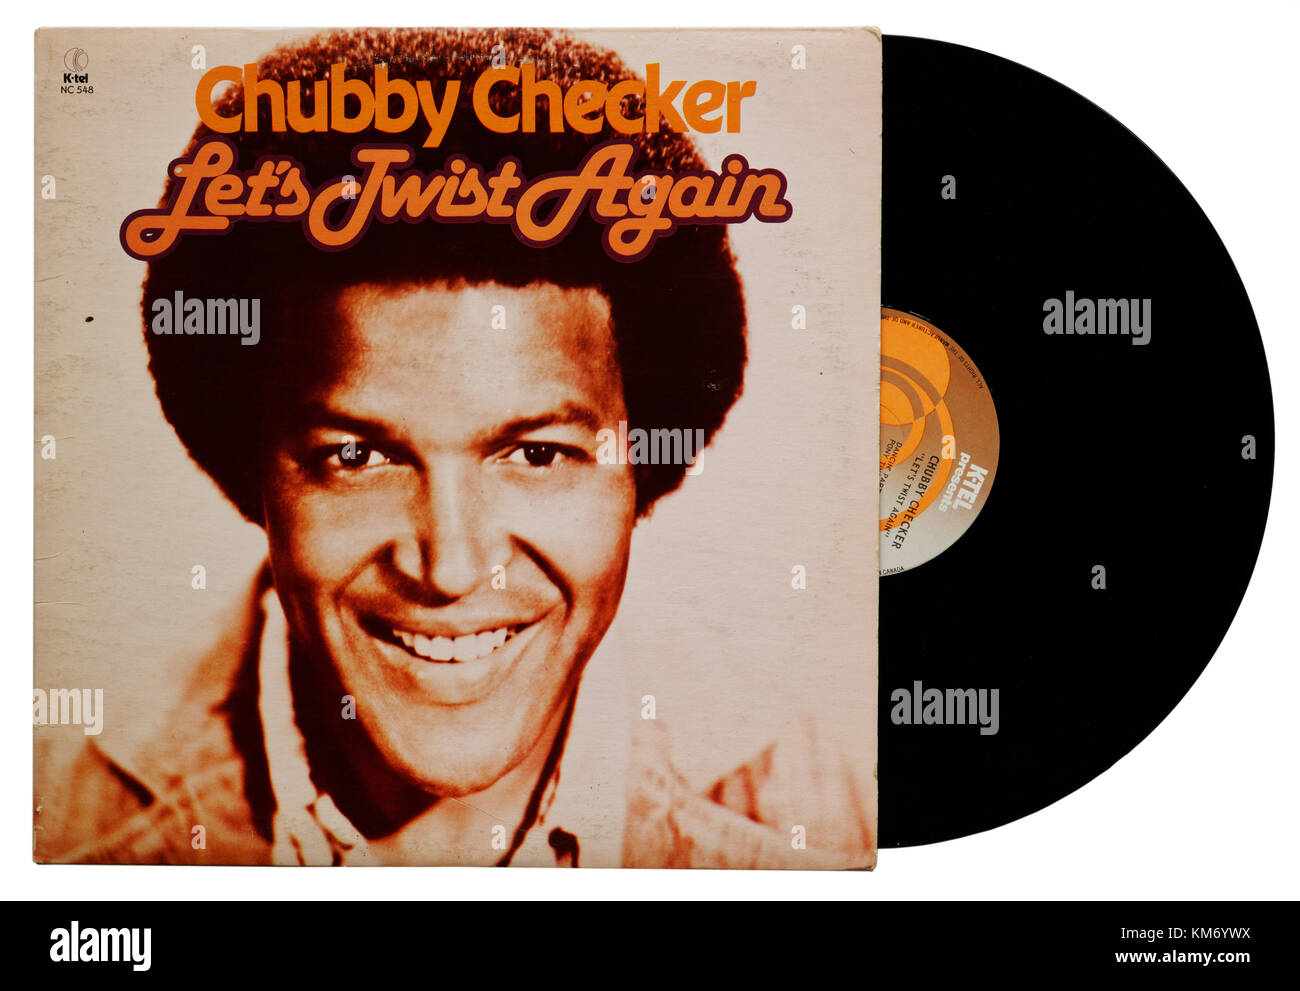 Chubby Checker Let's Twist Again album - Stock Image